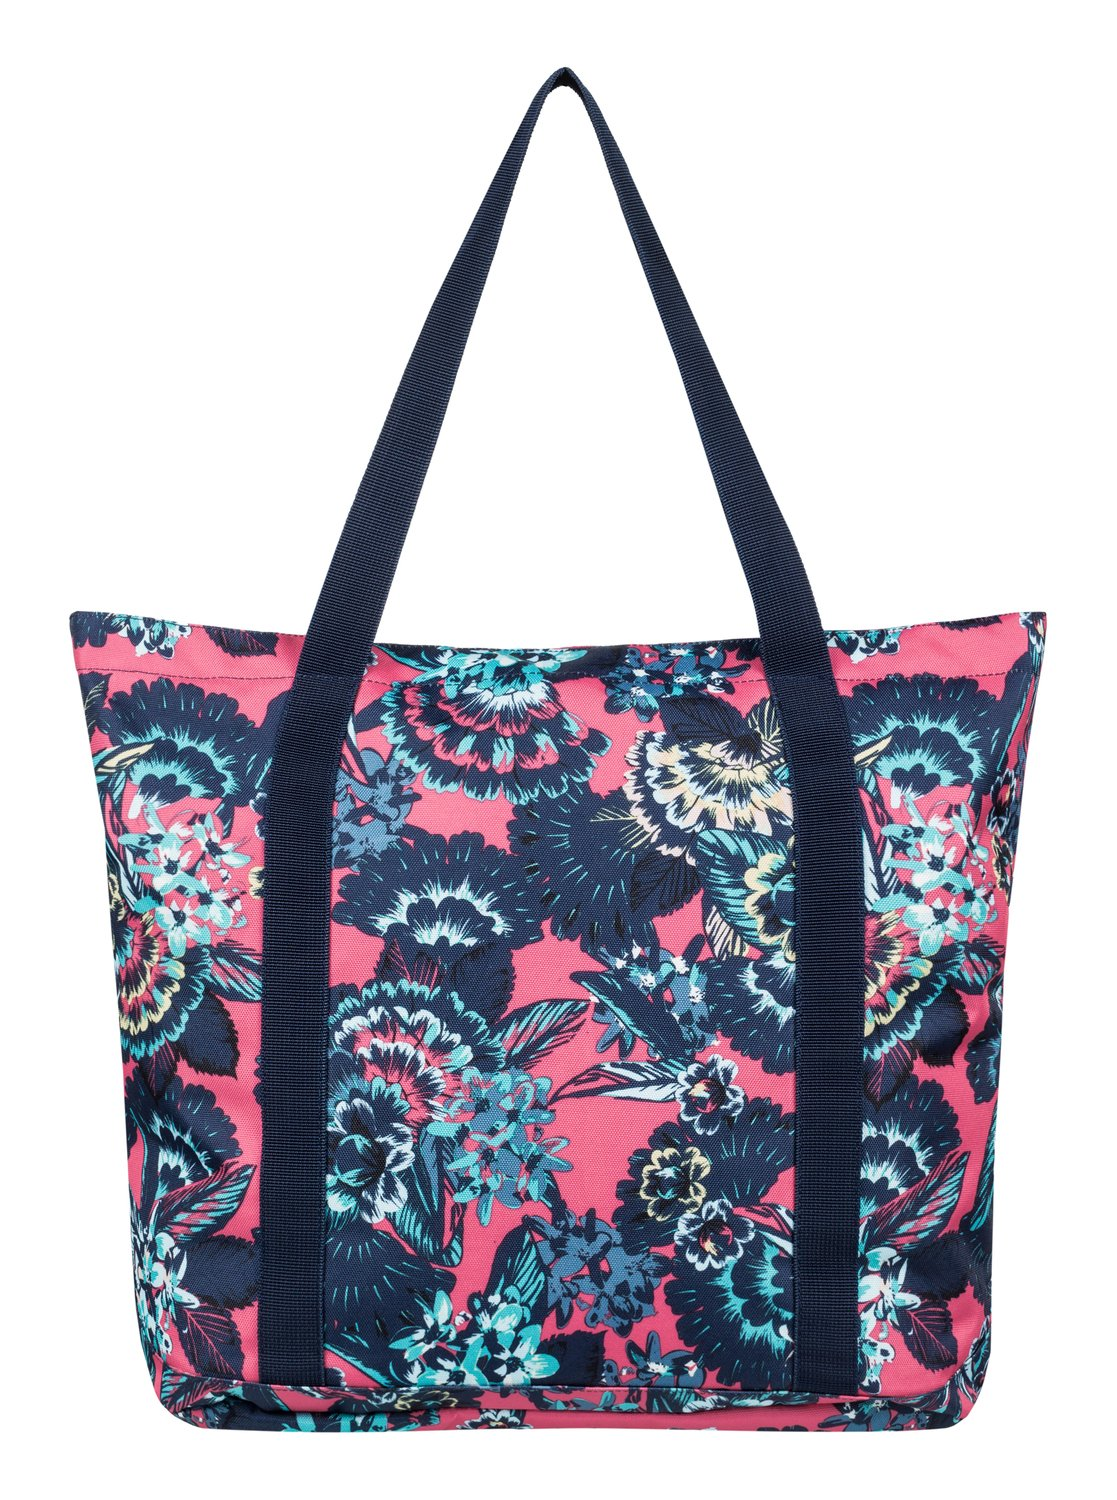 0b00c220ae48f 2 Other Side - Large Tote Bag ERJBP03651 Roxy